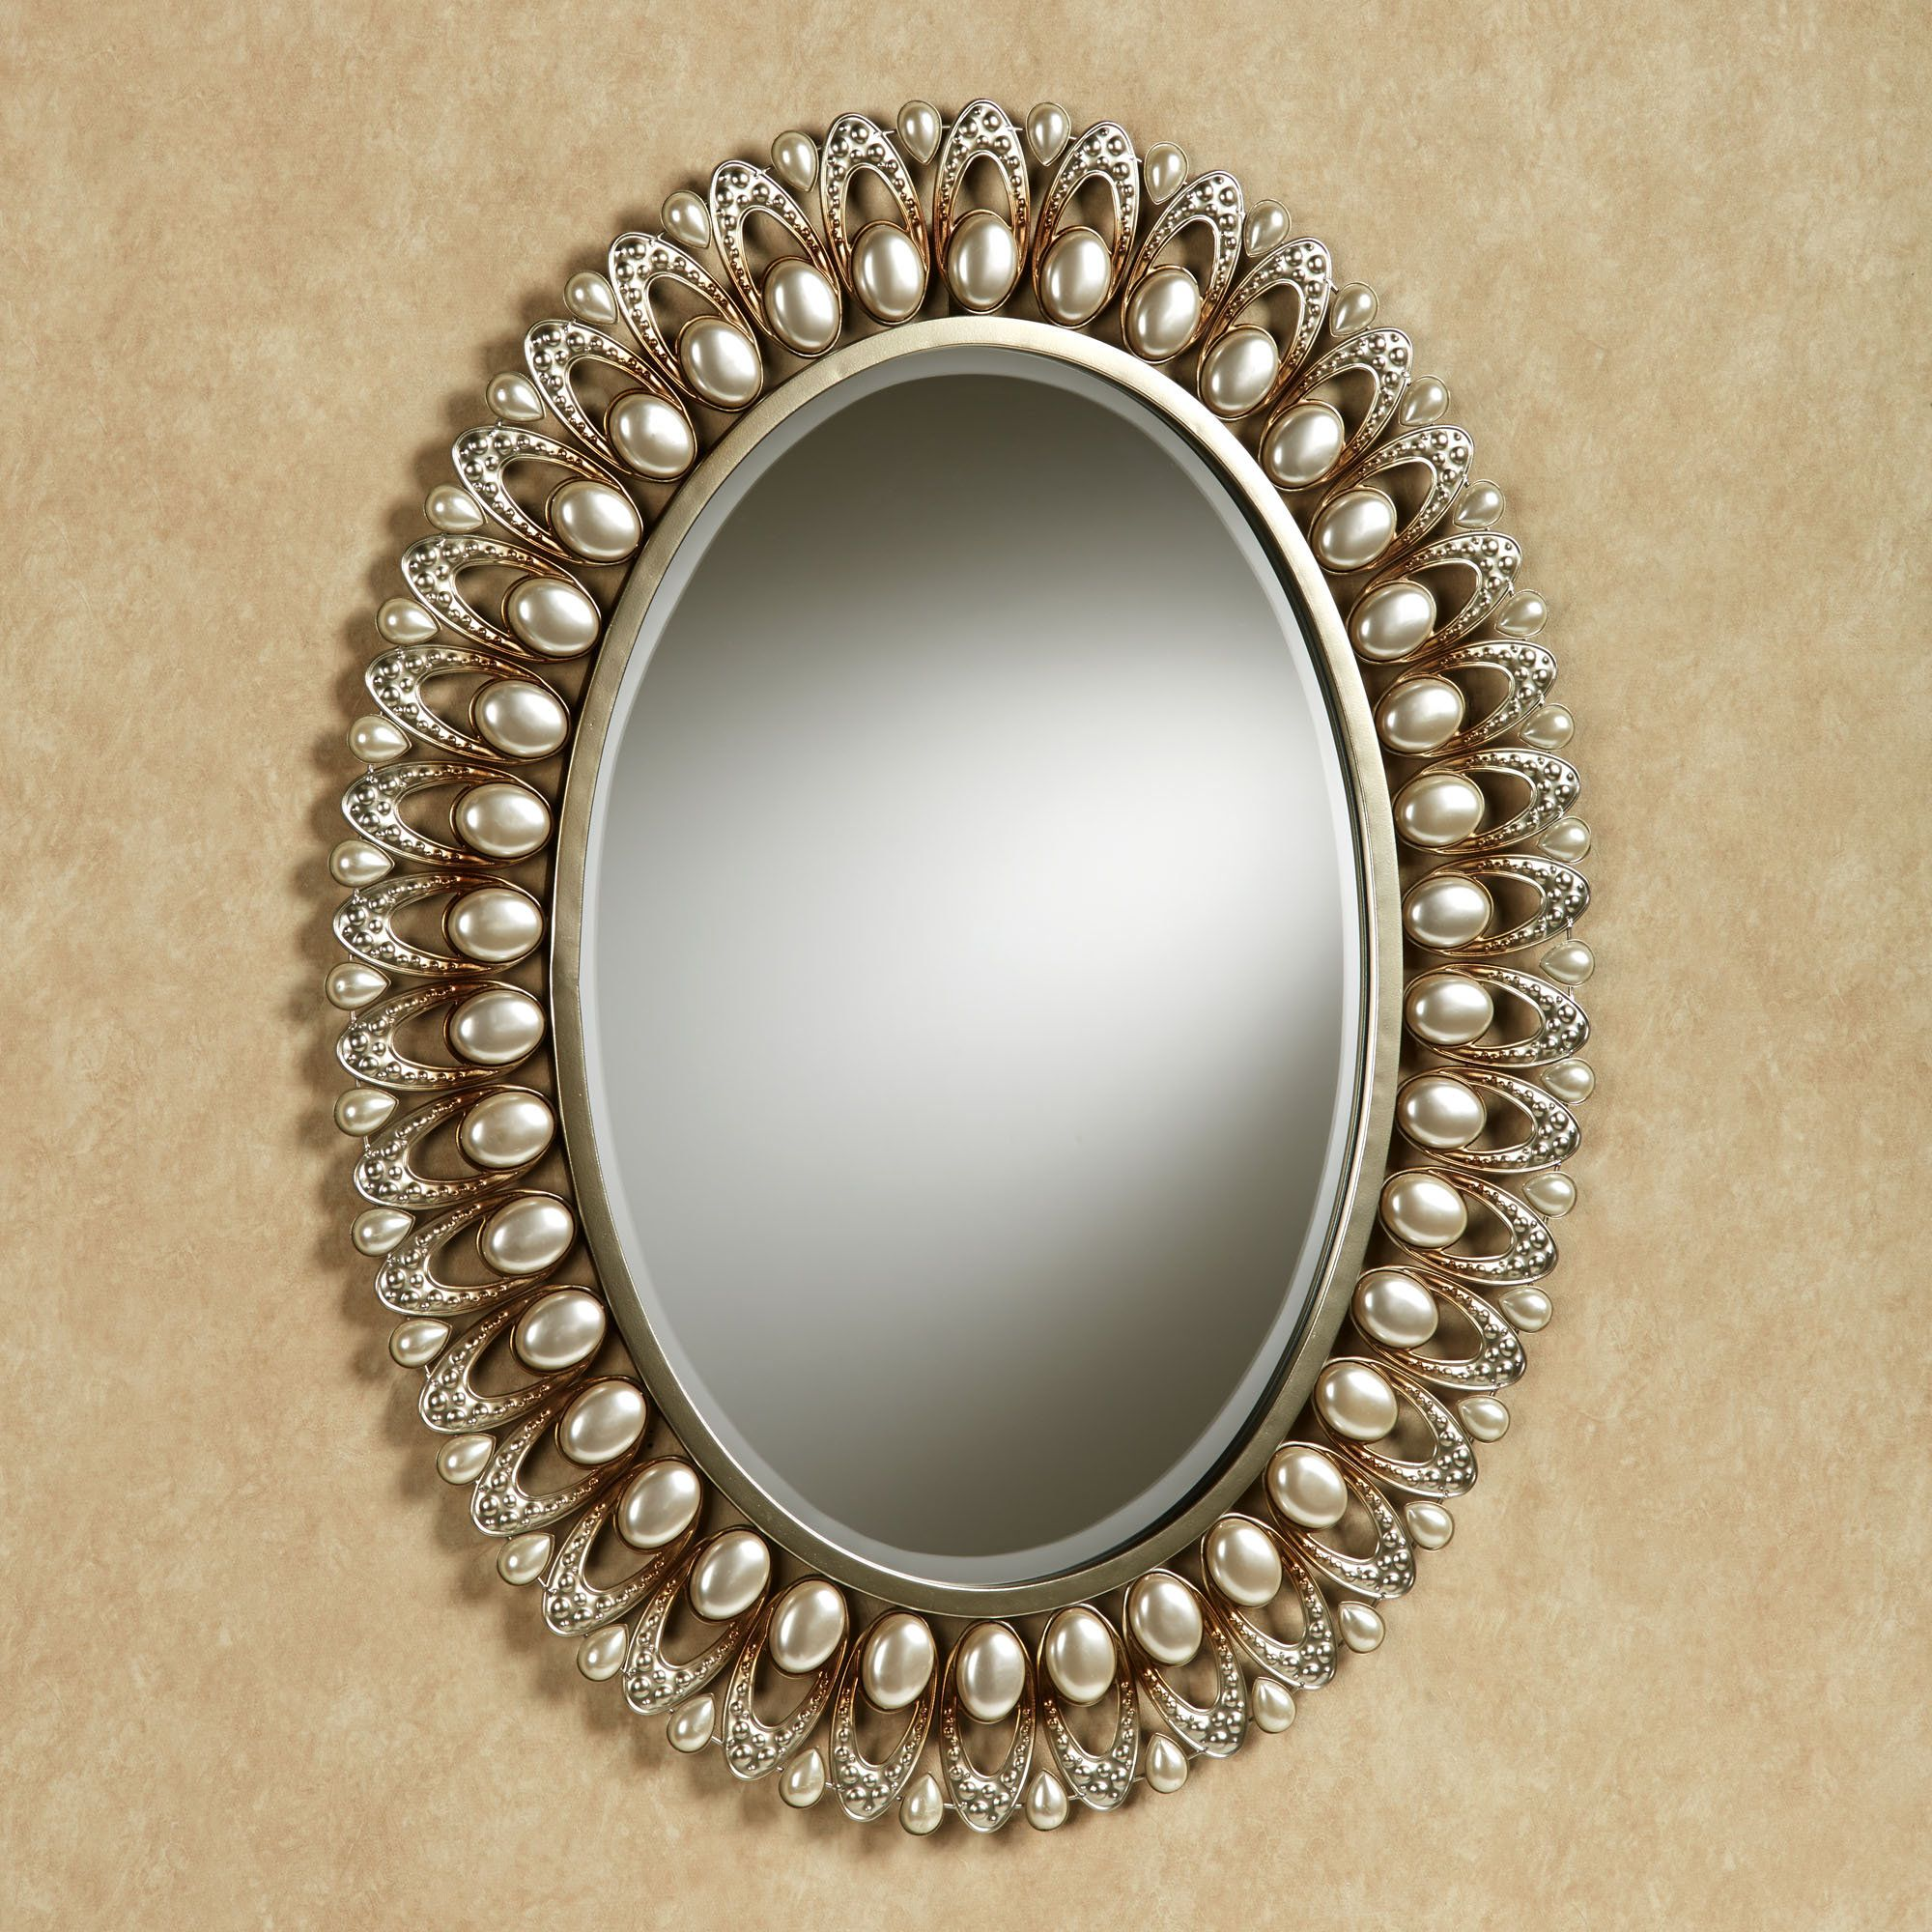 Julietta wall mirror champagne gold dream home mirror mirror the julietta pearl oval wall mirror brings stylish sophistication to the room in which it is displayed beveled wall mirror has openwork ovals and large amipublicfo Choice Image